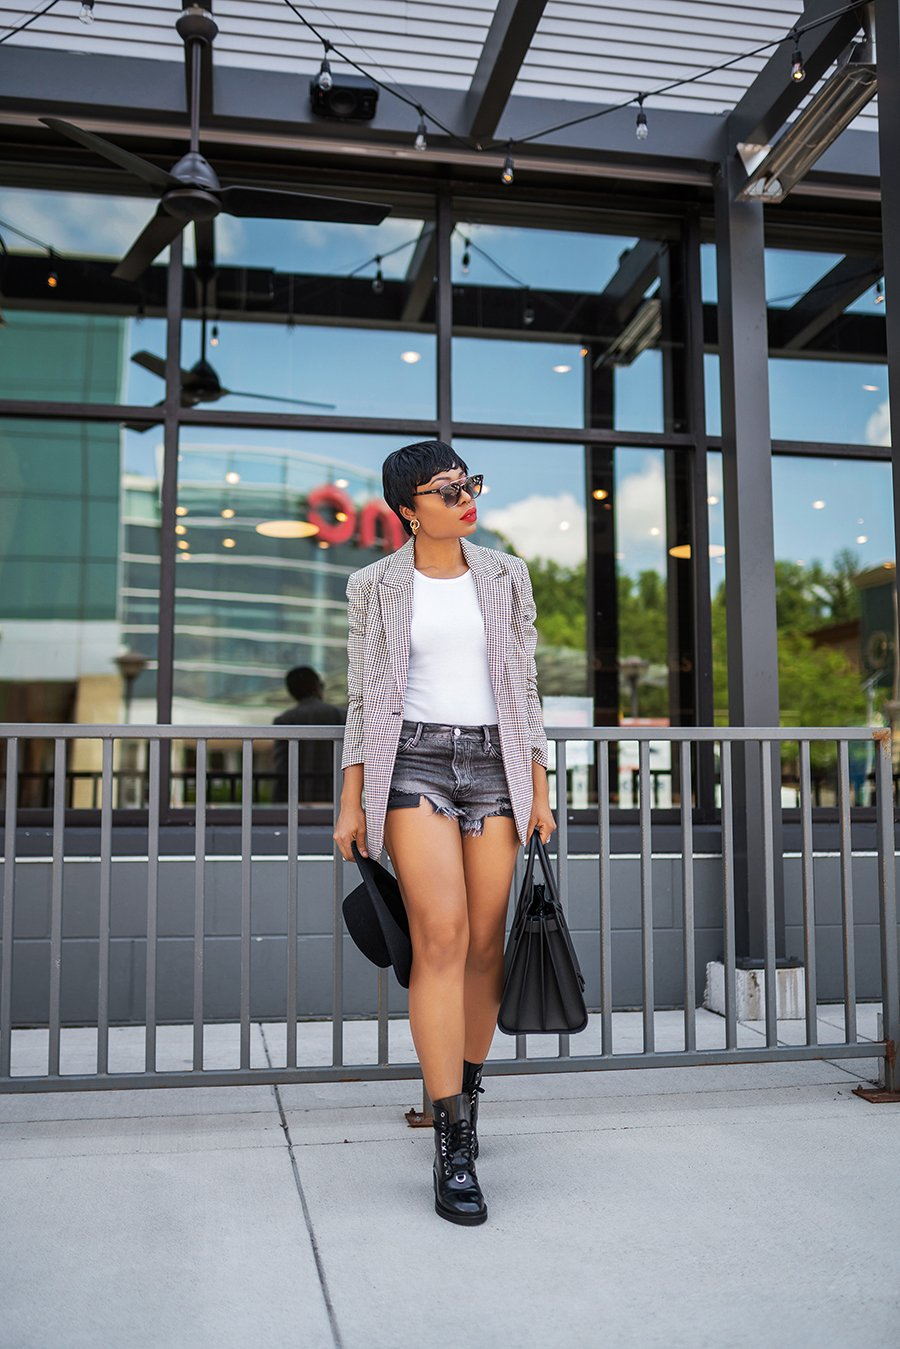 stella-adewunmi-of-jadore-fashion-blog-shares-fall-trends-for-fall-transition